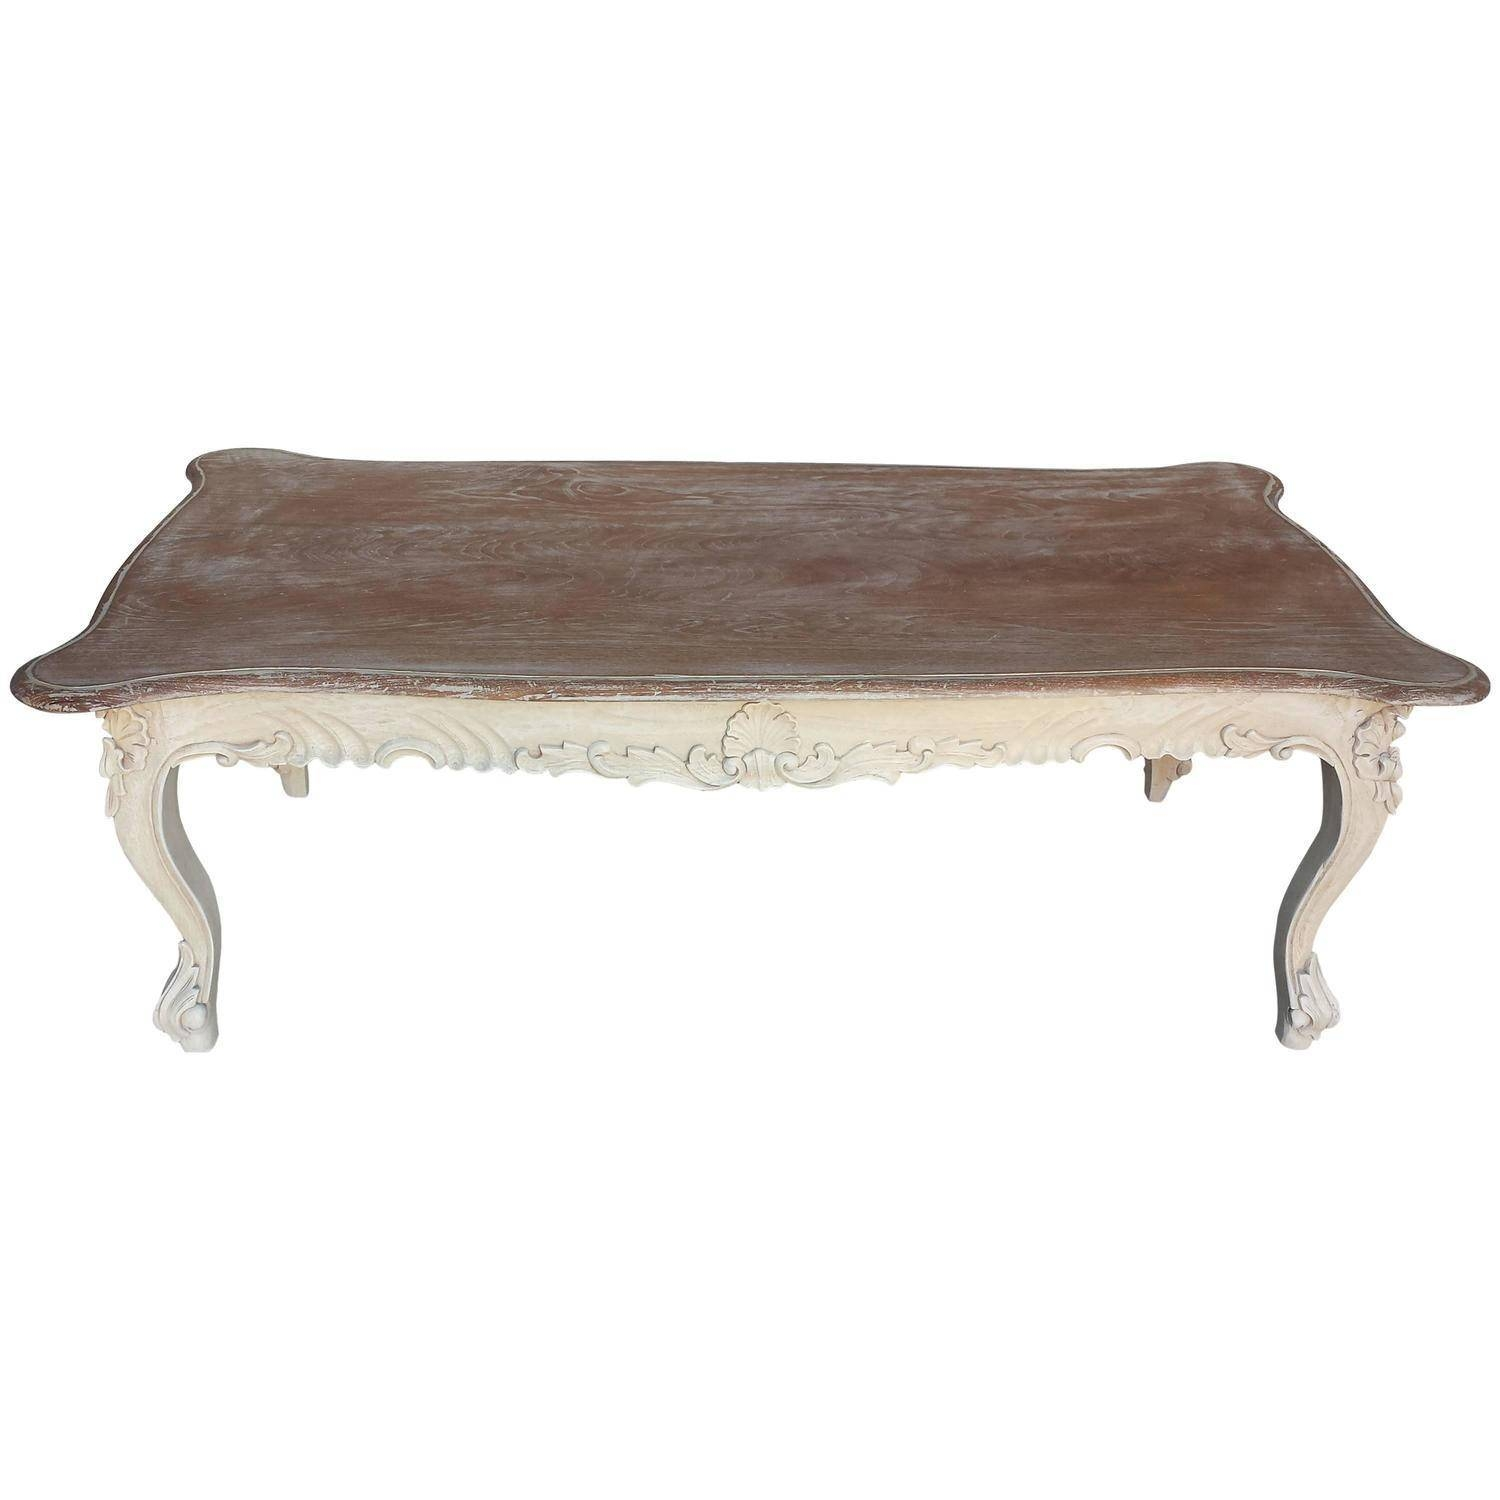 European French Country Style Coffee Table Living Room – Cottage regarding White Cottage Style Coffee Tables (Image 14 of 30)